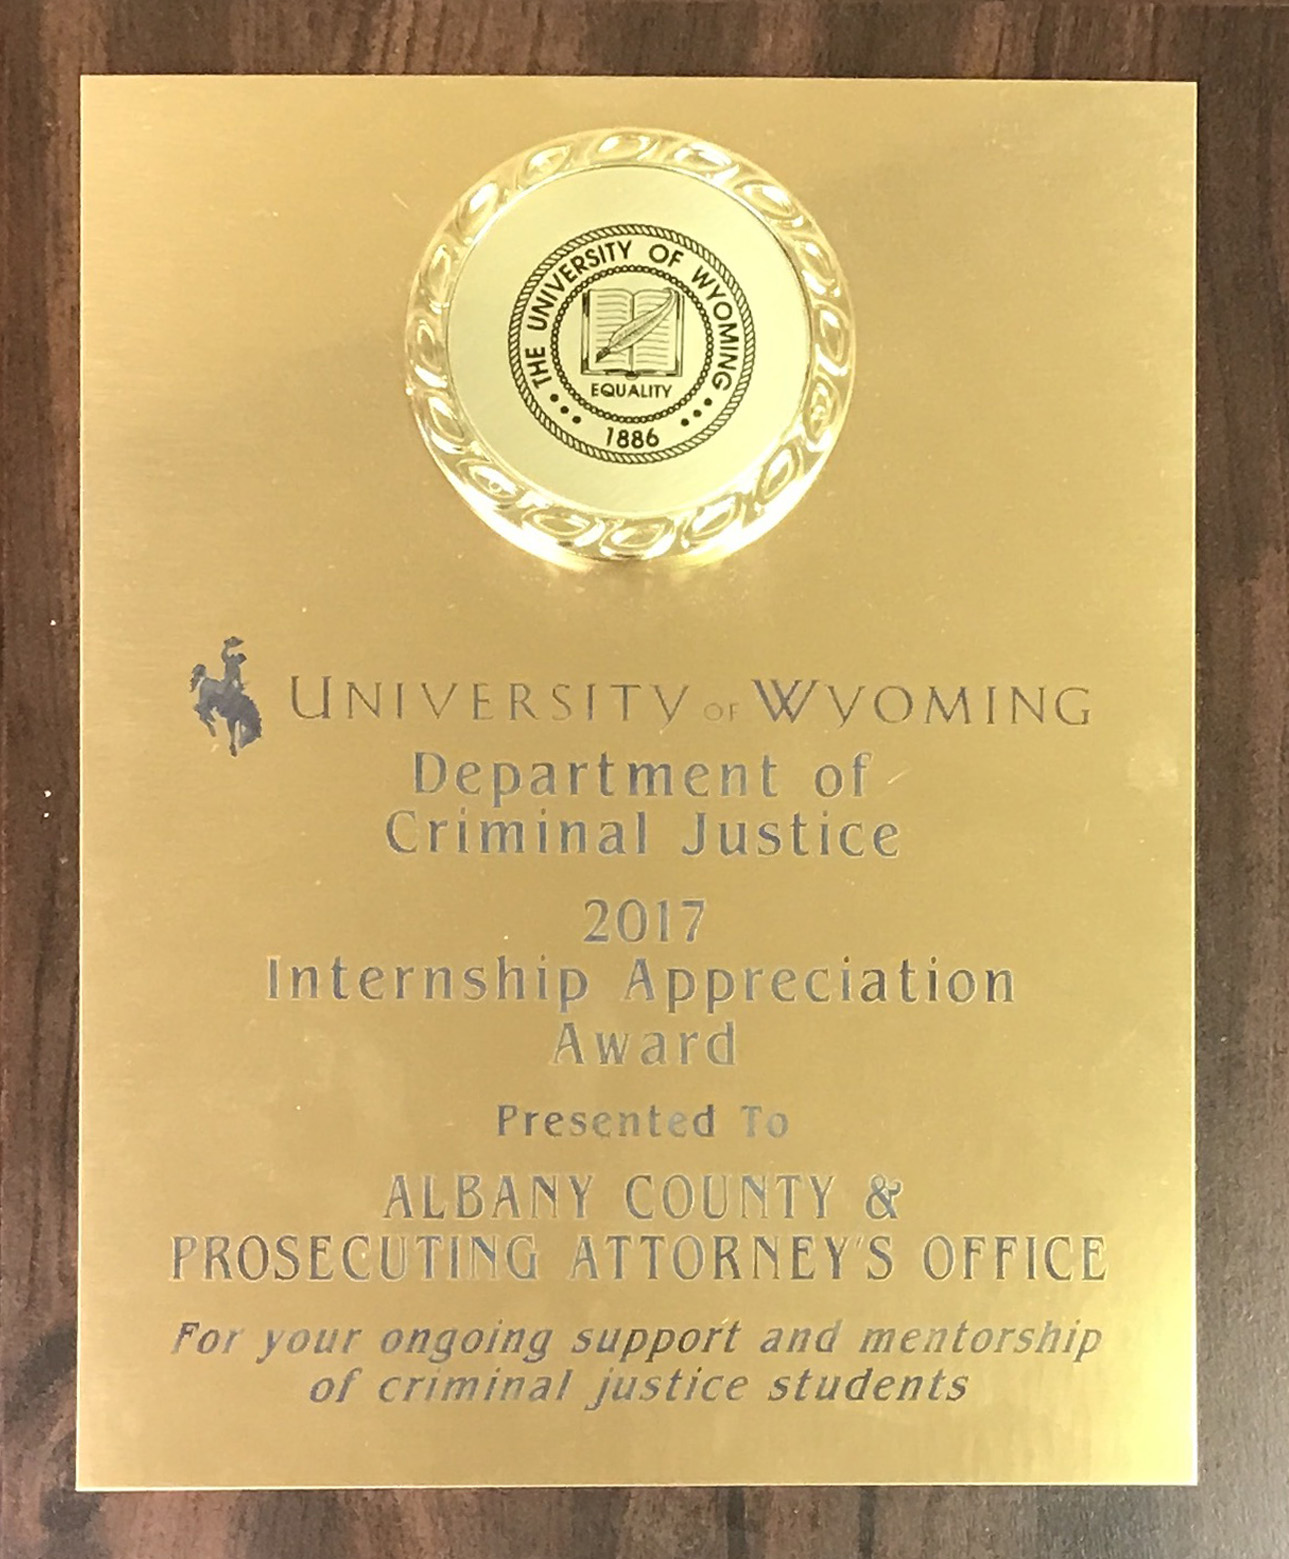 2017 University of Wyoming Department of Criminal Justice Internship Appreciation Award Plaque